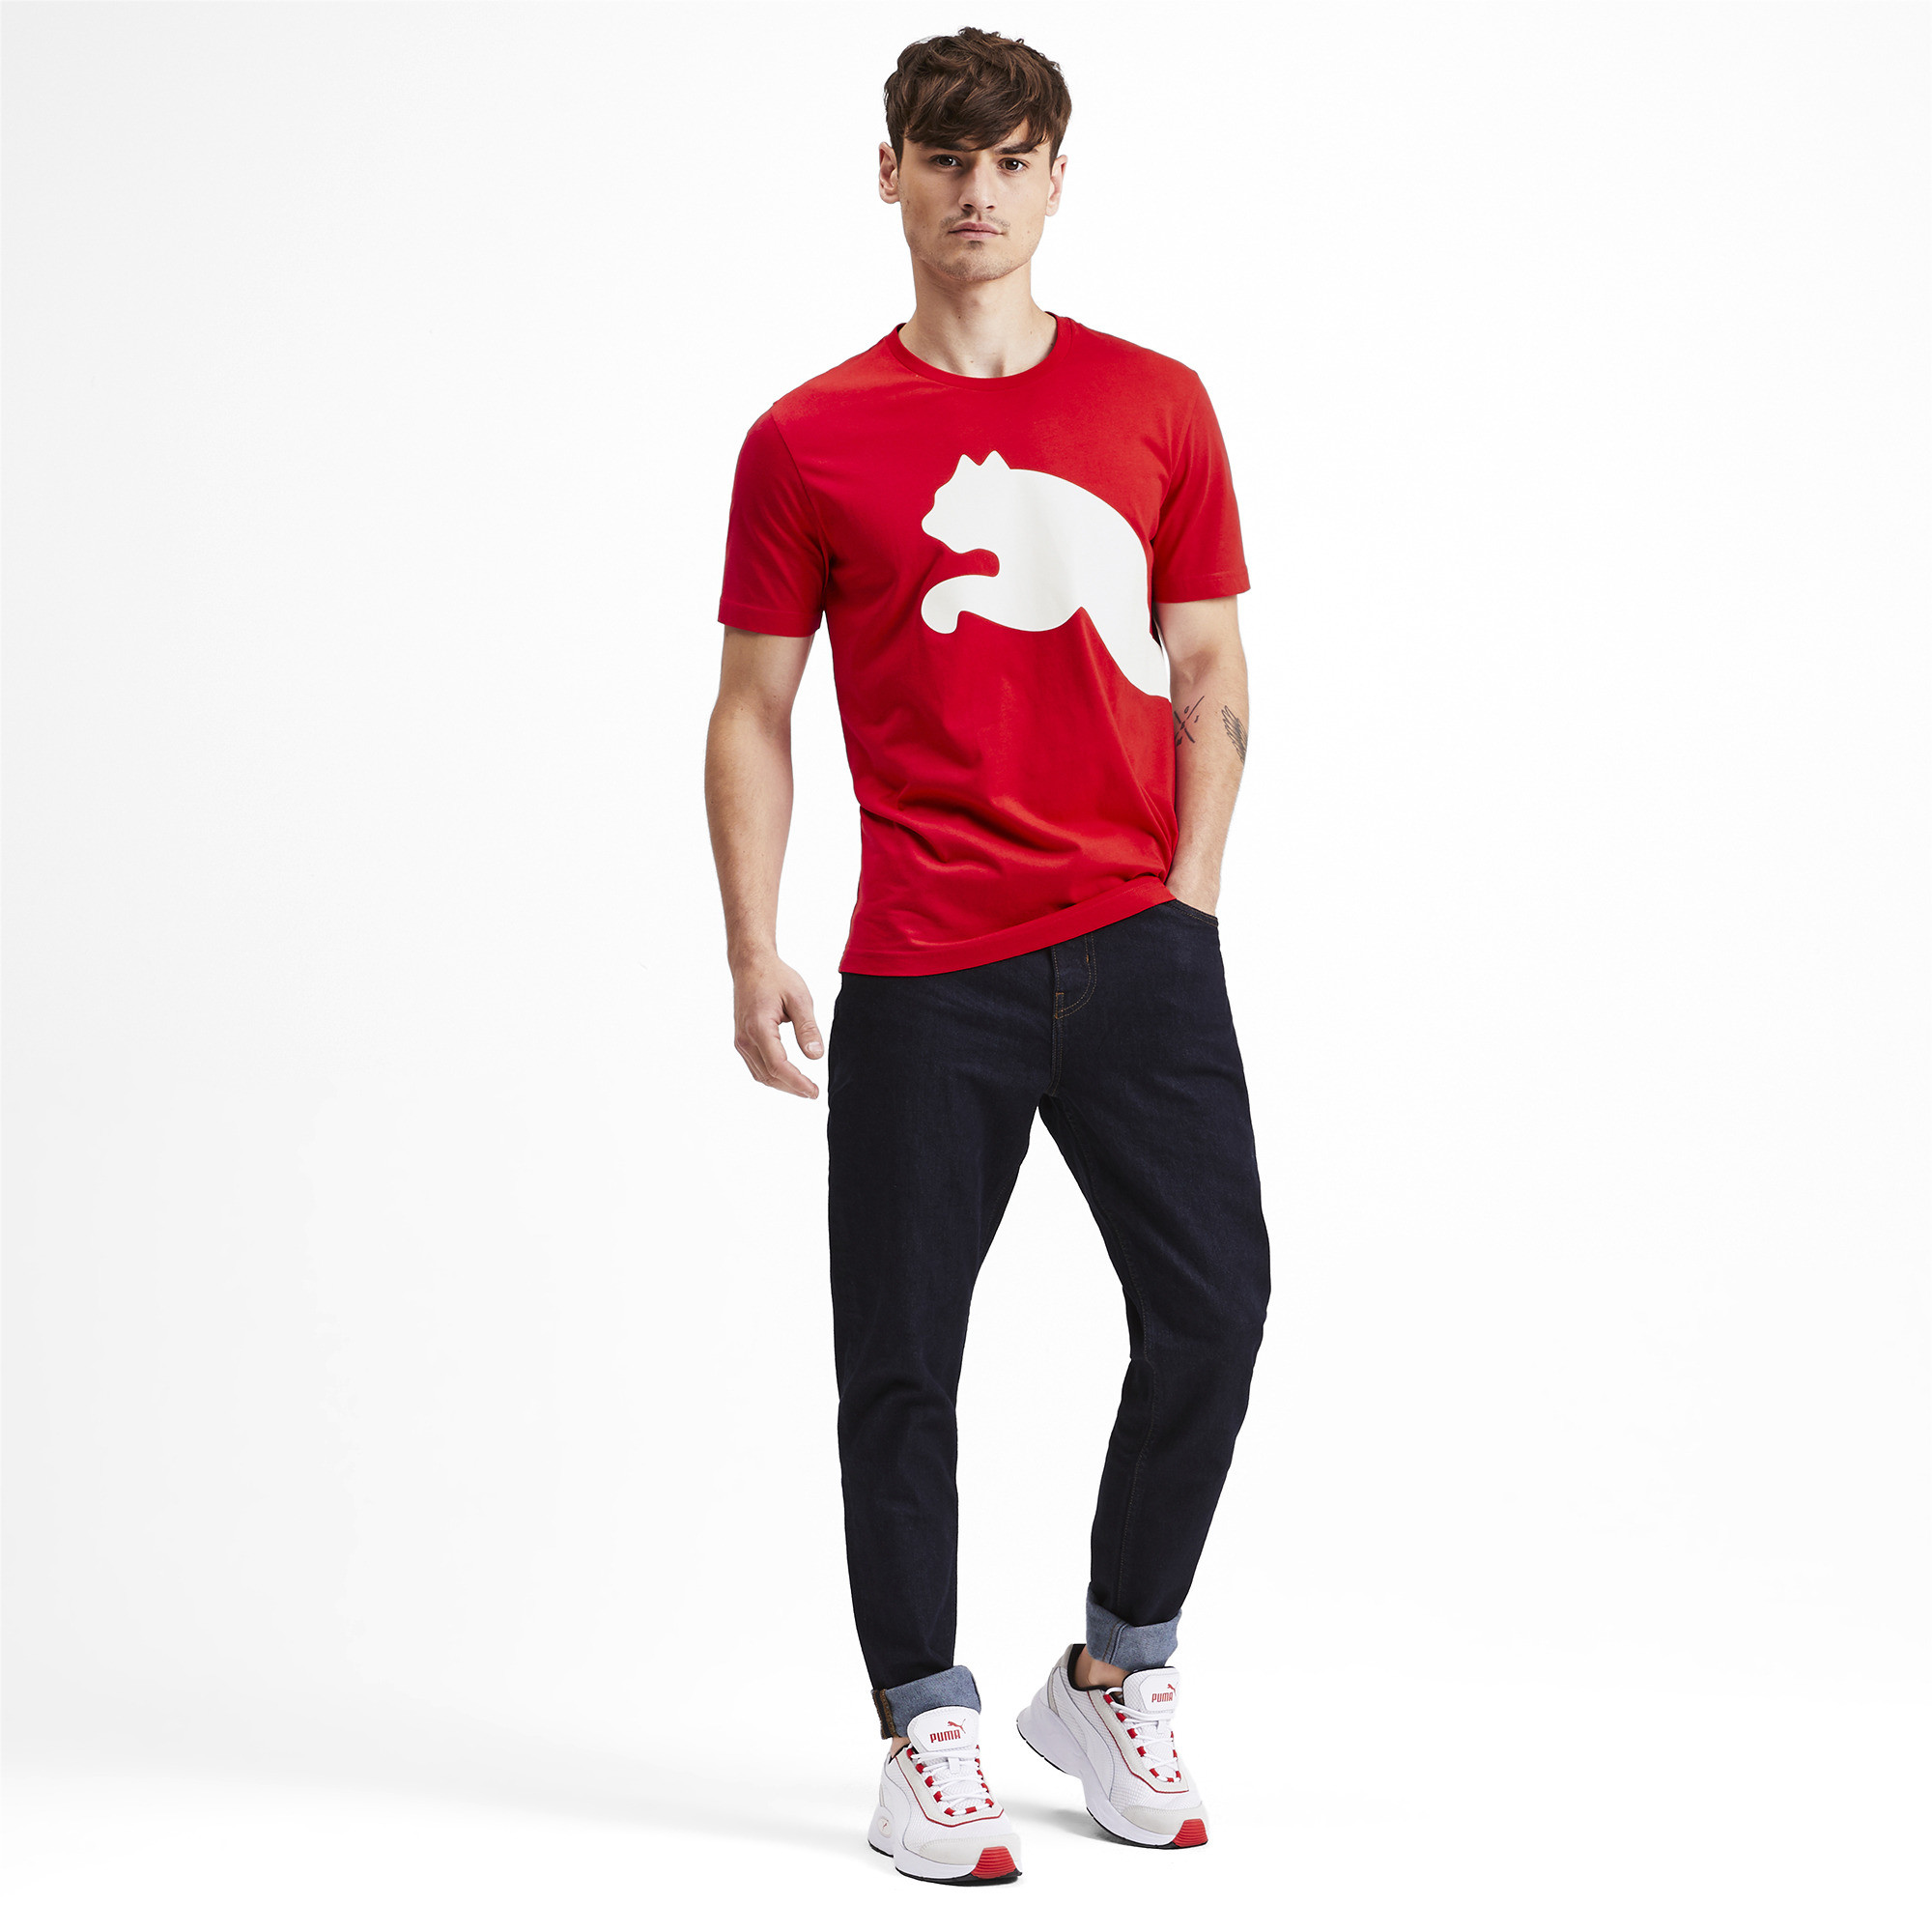 PUMA-Big-Logo-Men-039-s-Tee-Men-Tee-Basics thumbnail 27